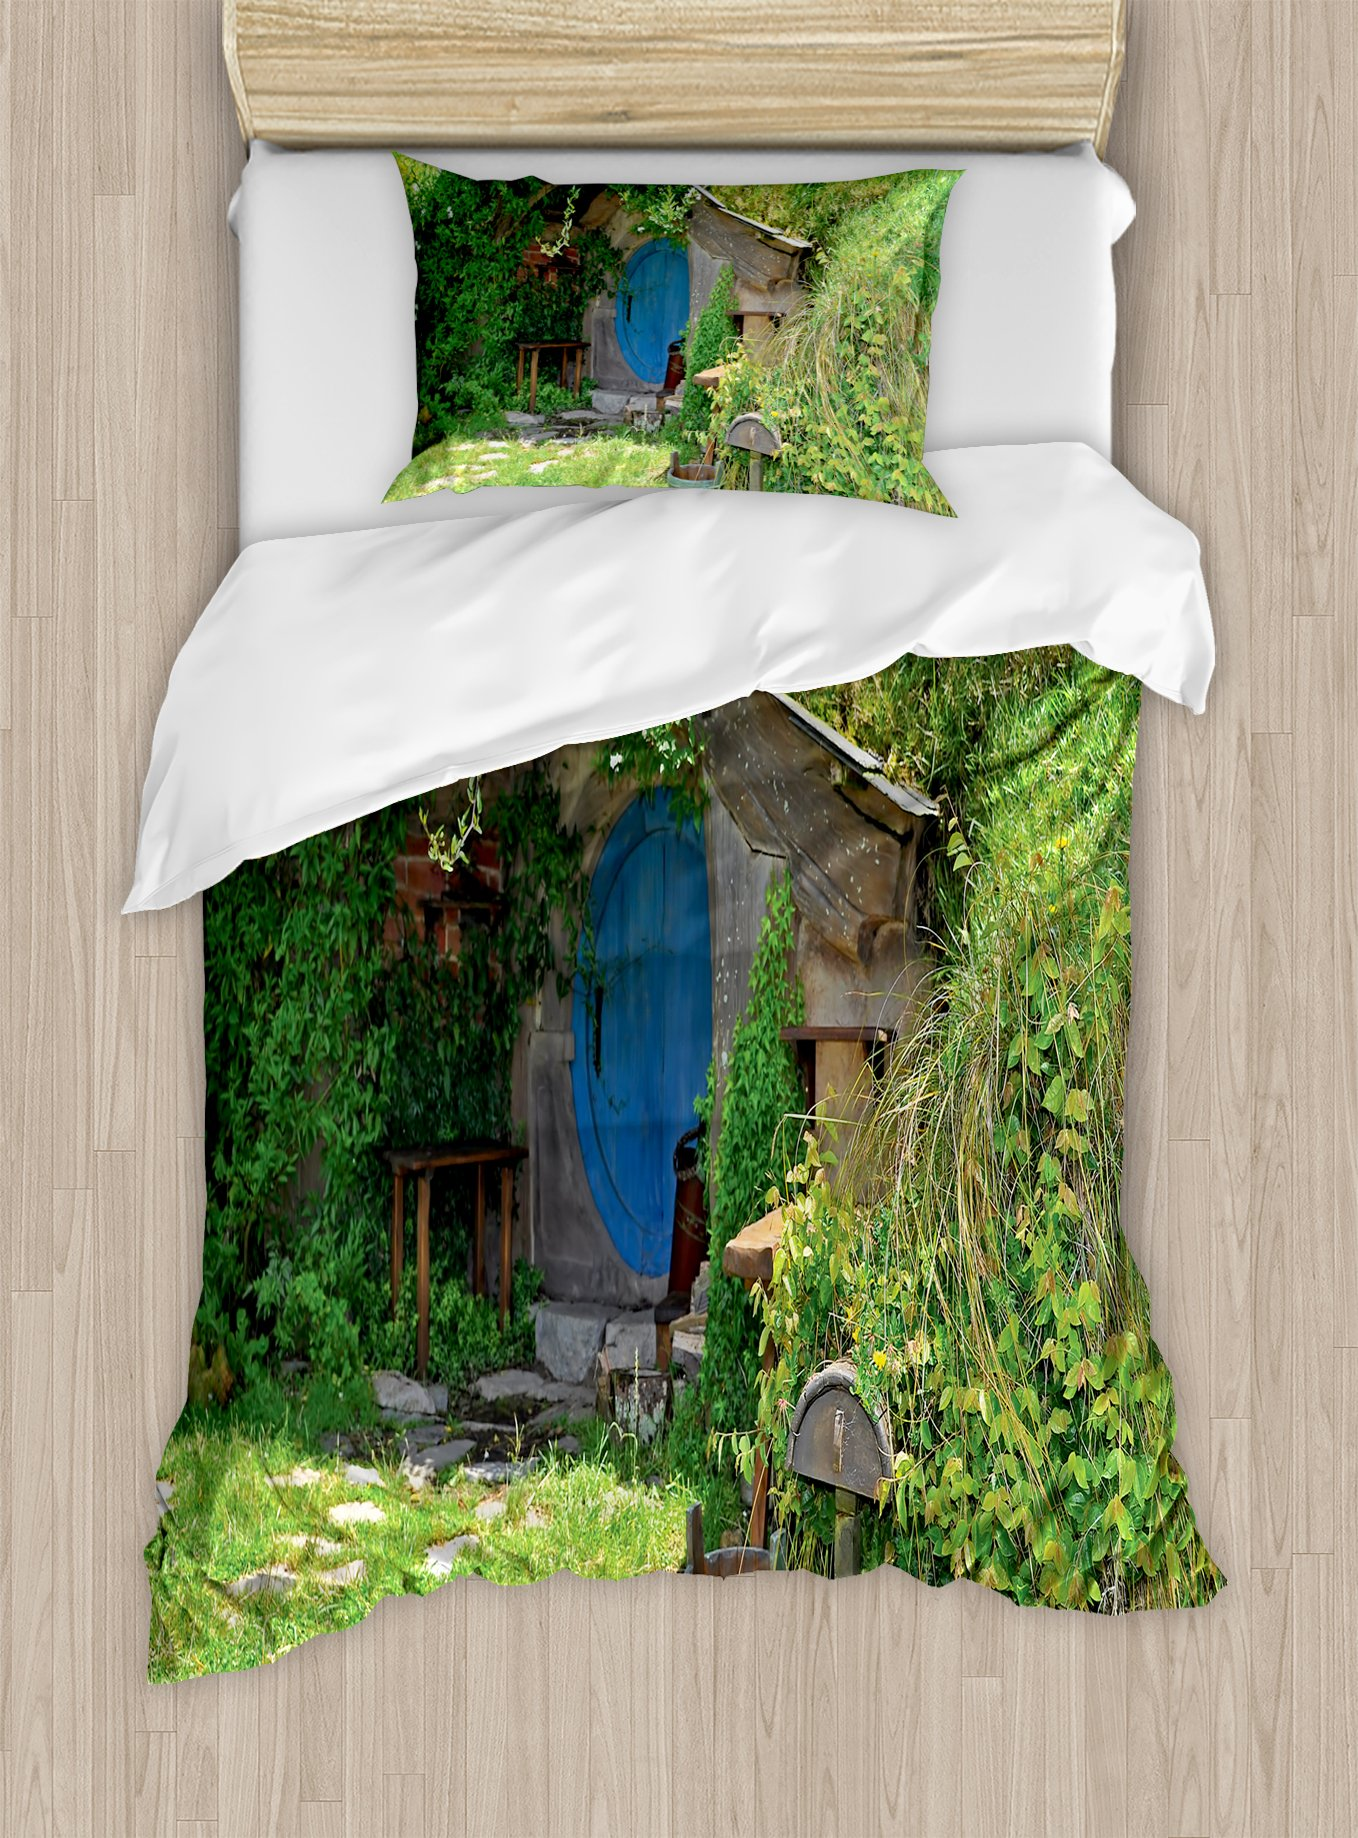 Ambesonne Hobbits Duvet Cover Set Twin Size, Fantasy Hobbit Land House in Magical Overhill Woods Movie Scene New Zealand, Decorative 2 Piece Bedding Set with 1 Pillow Sham, Green Brown Blue